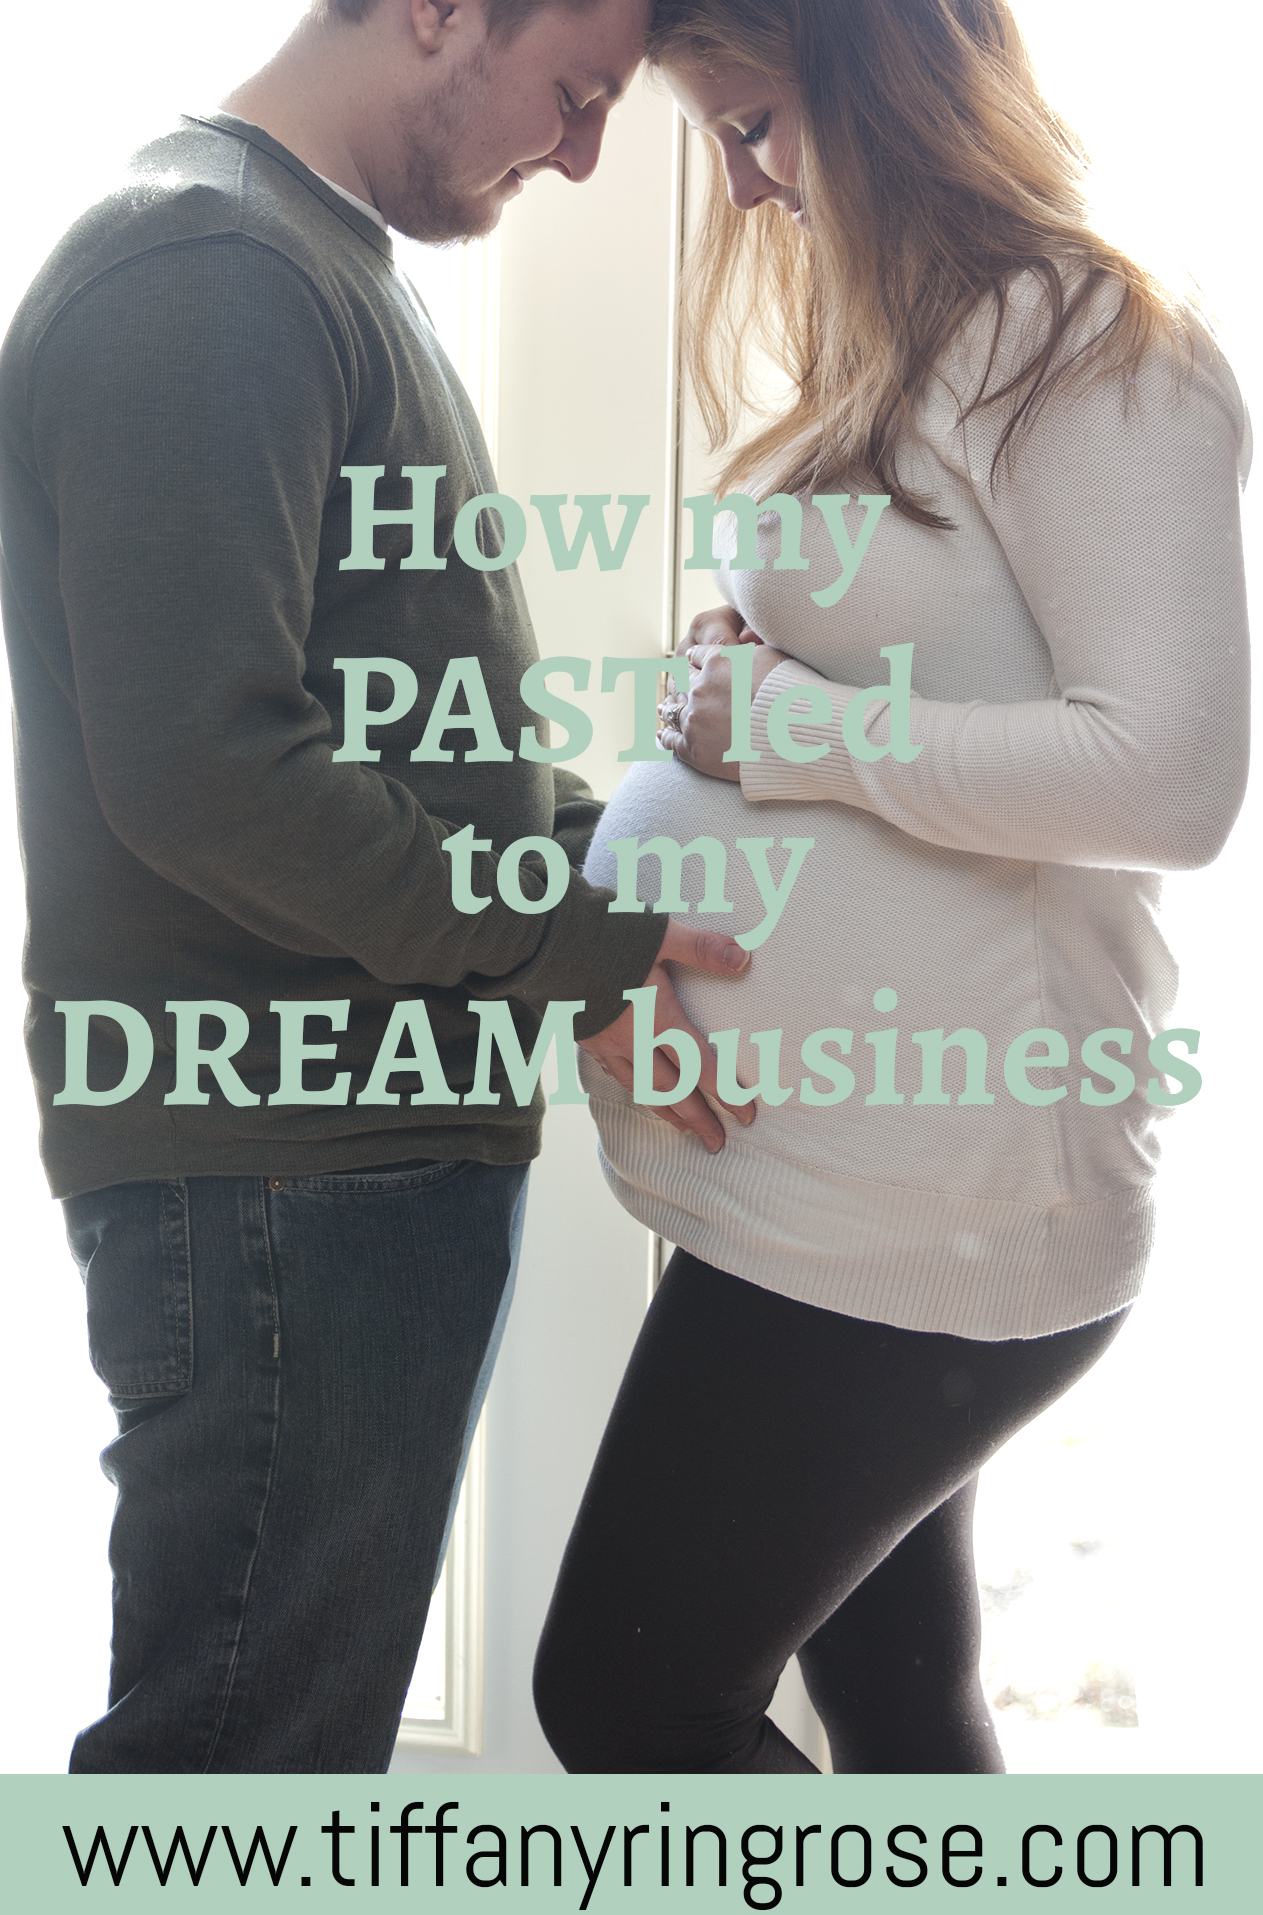 How my past lead to my dream business